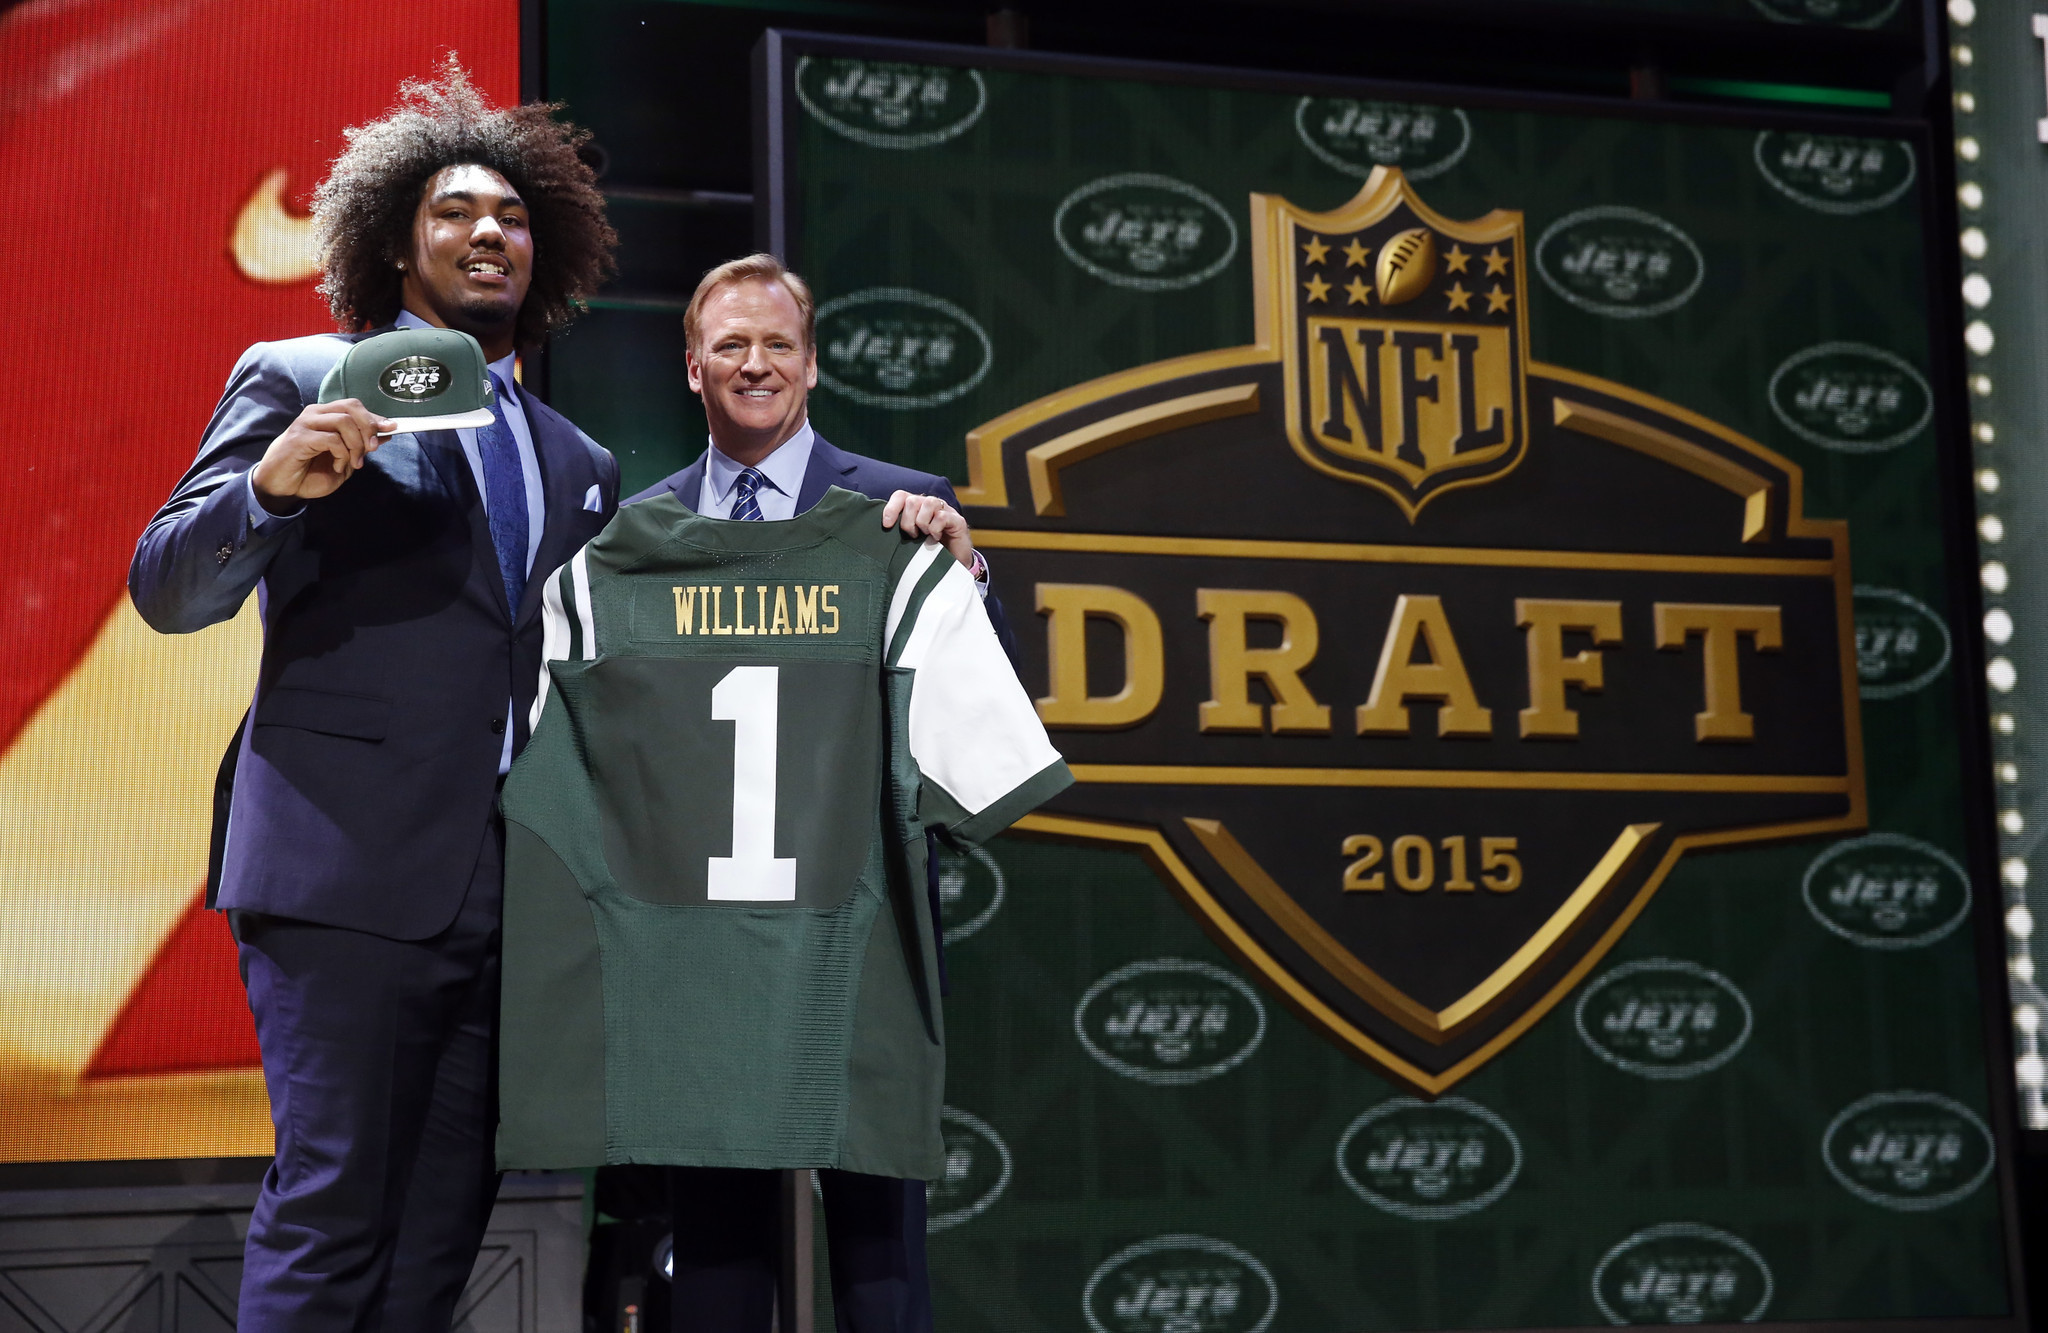 Jets select Mainland s Leonard Williams with No. 6 pick in NFL draft -  Orlando Sentinel 8a859d9feec